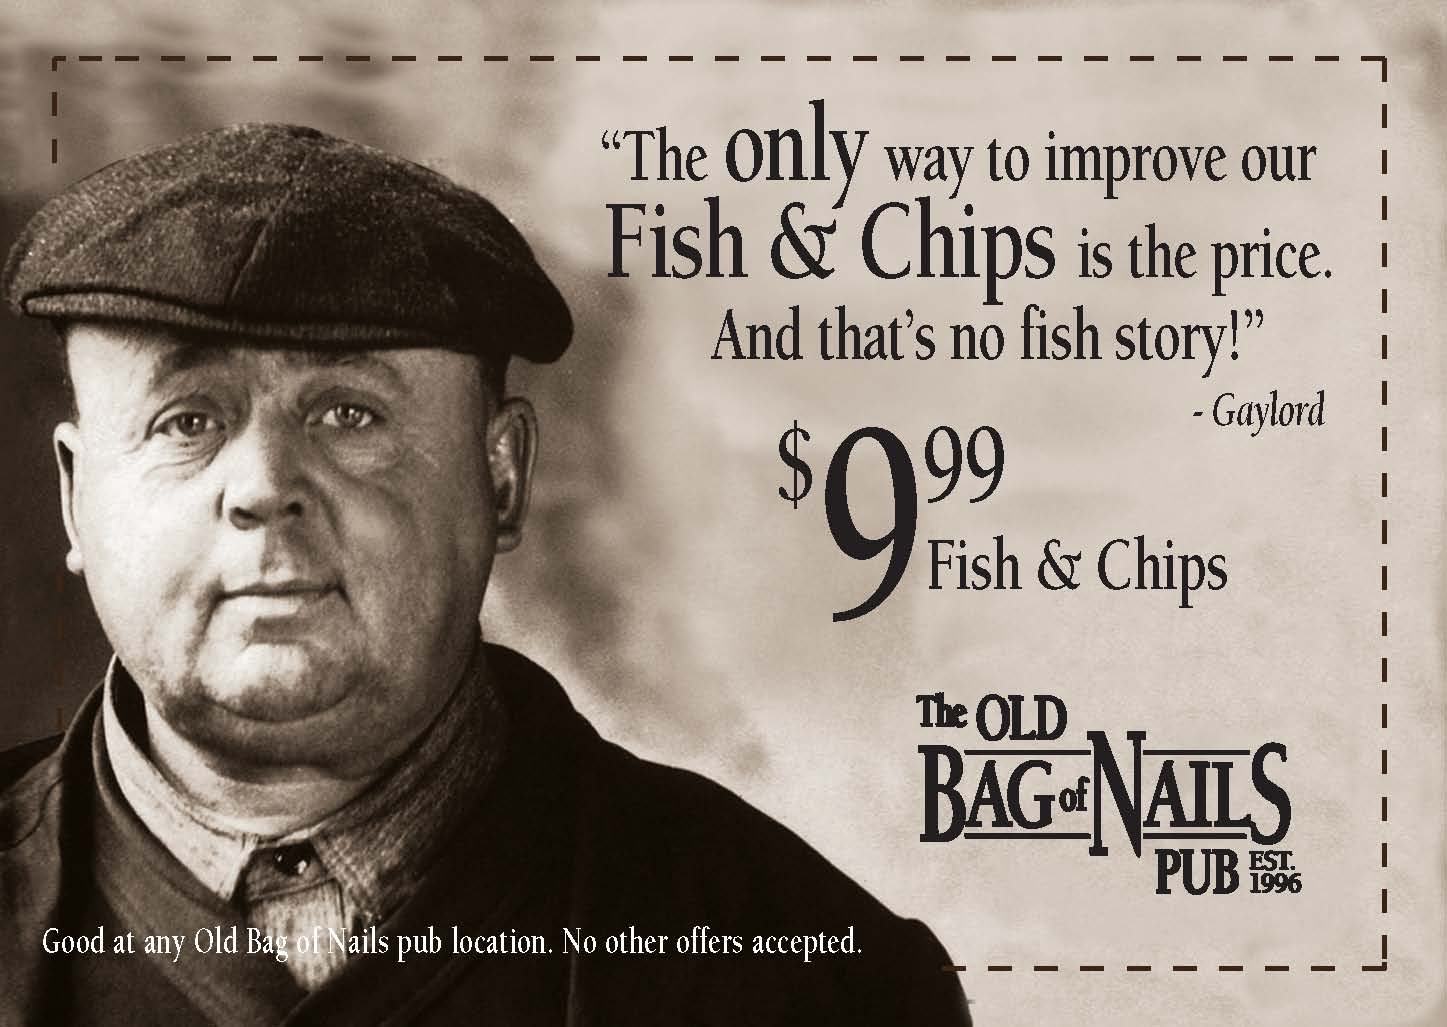 The only way to improve our Fish & Chips is the price!